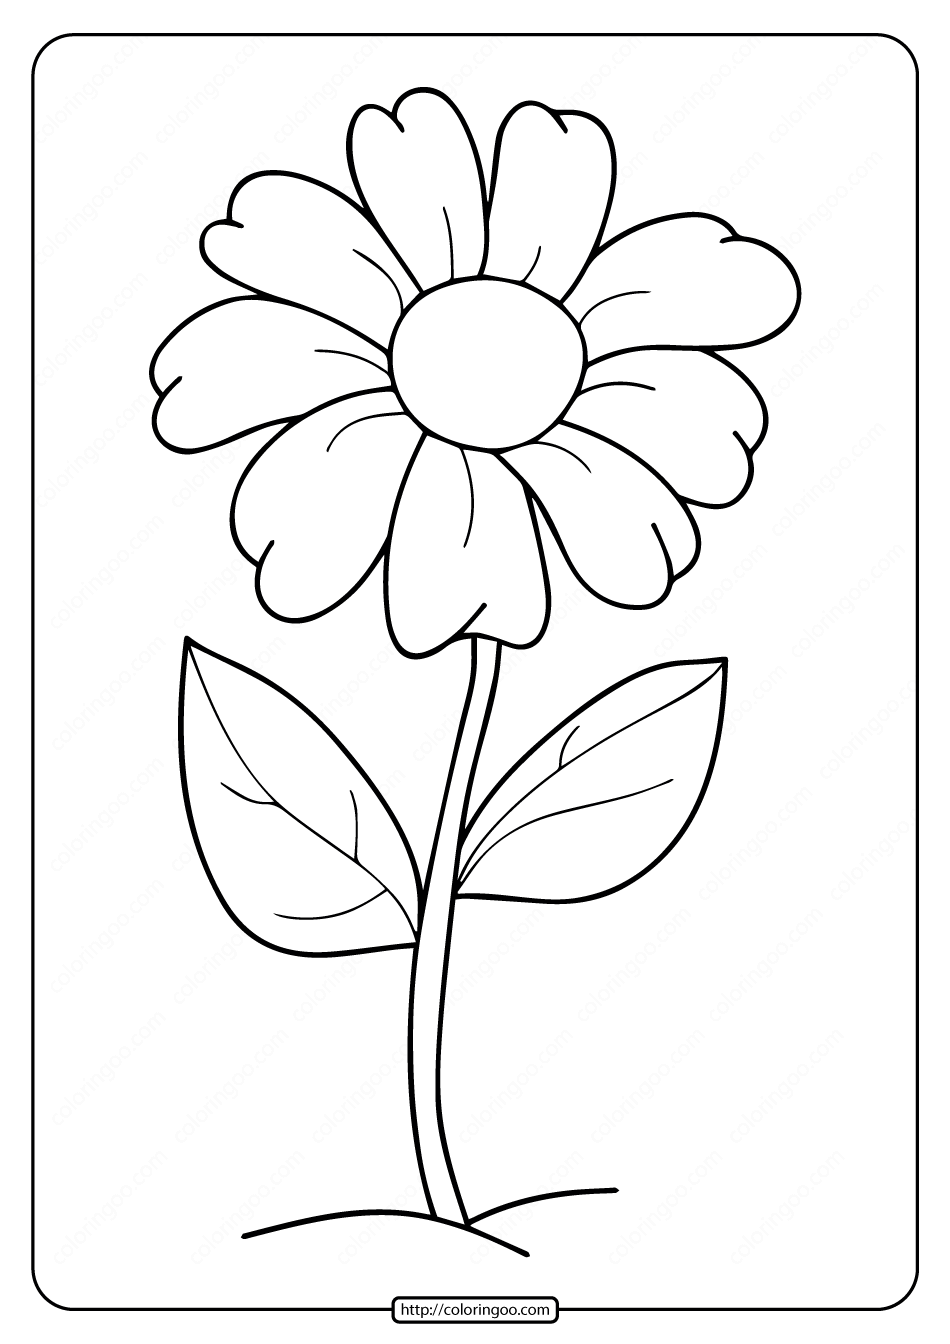 Free Printable Simple Flower Coloring Pages